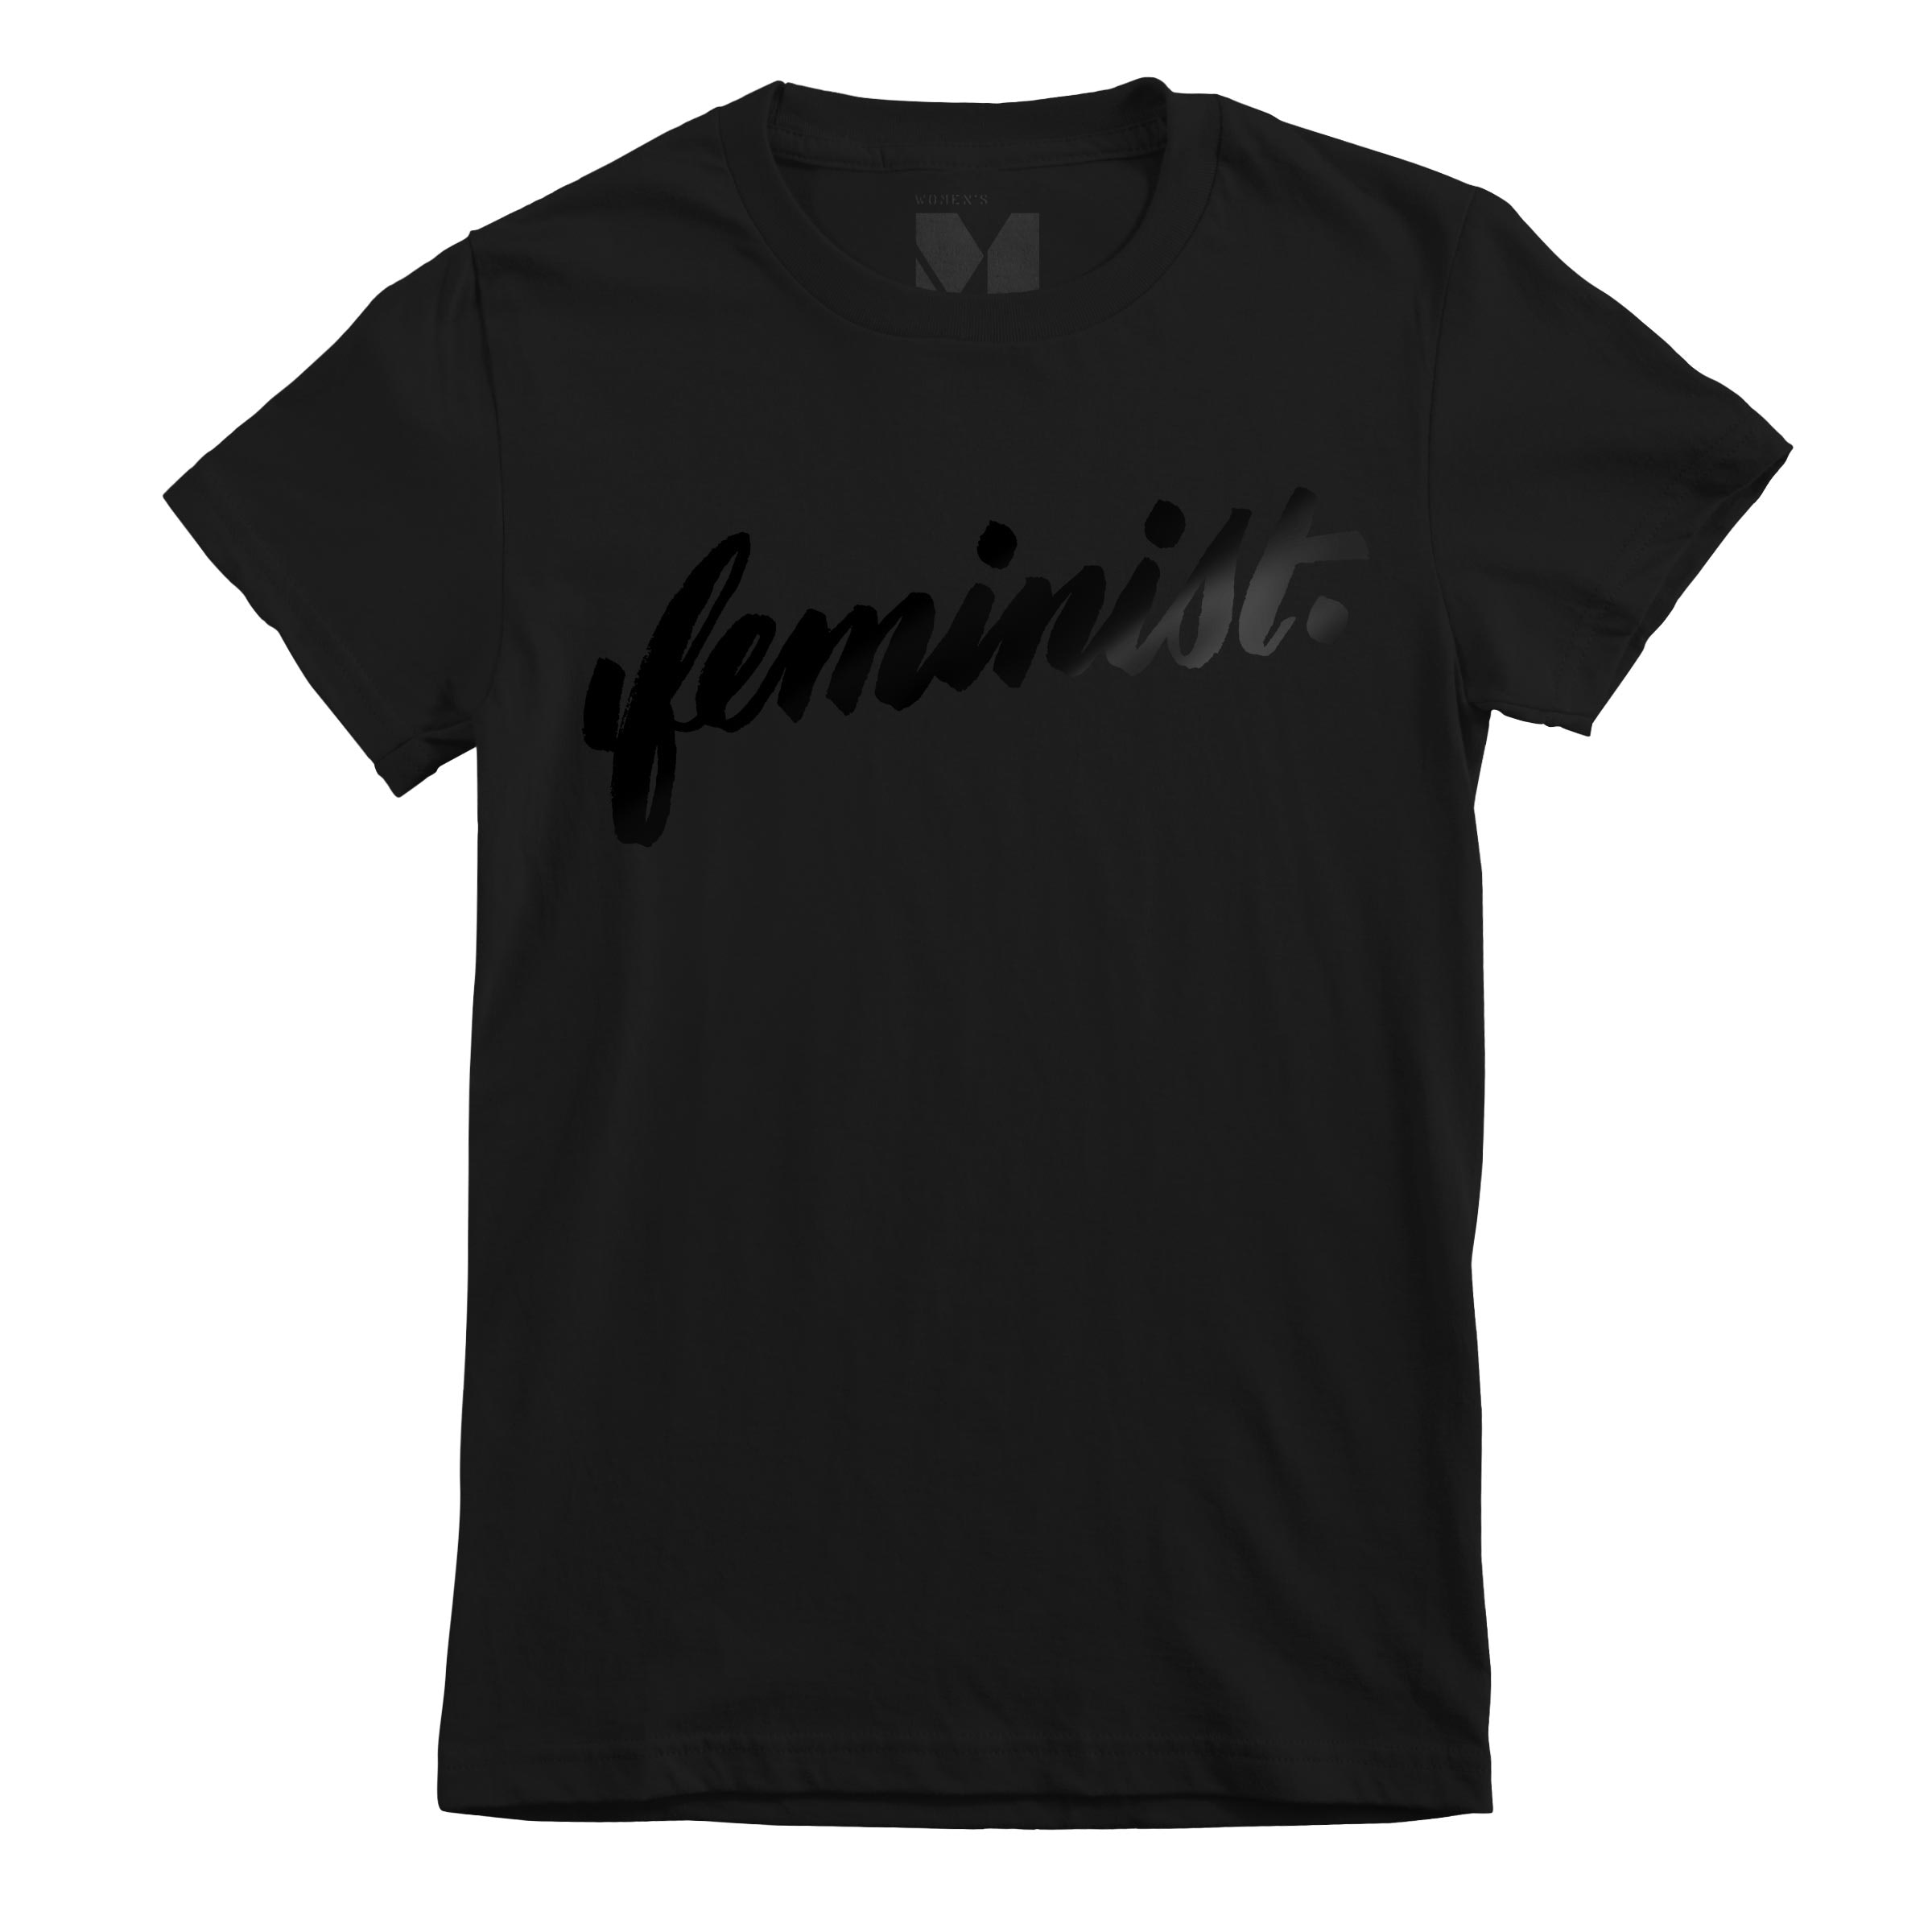 Big F, Little F - Black Friday Black (Women's)